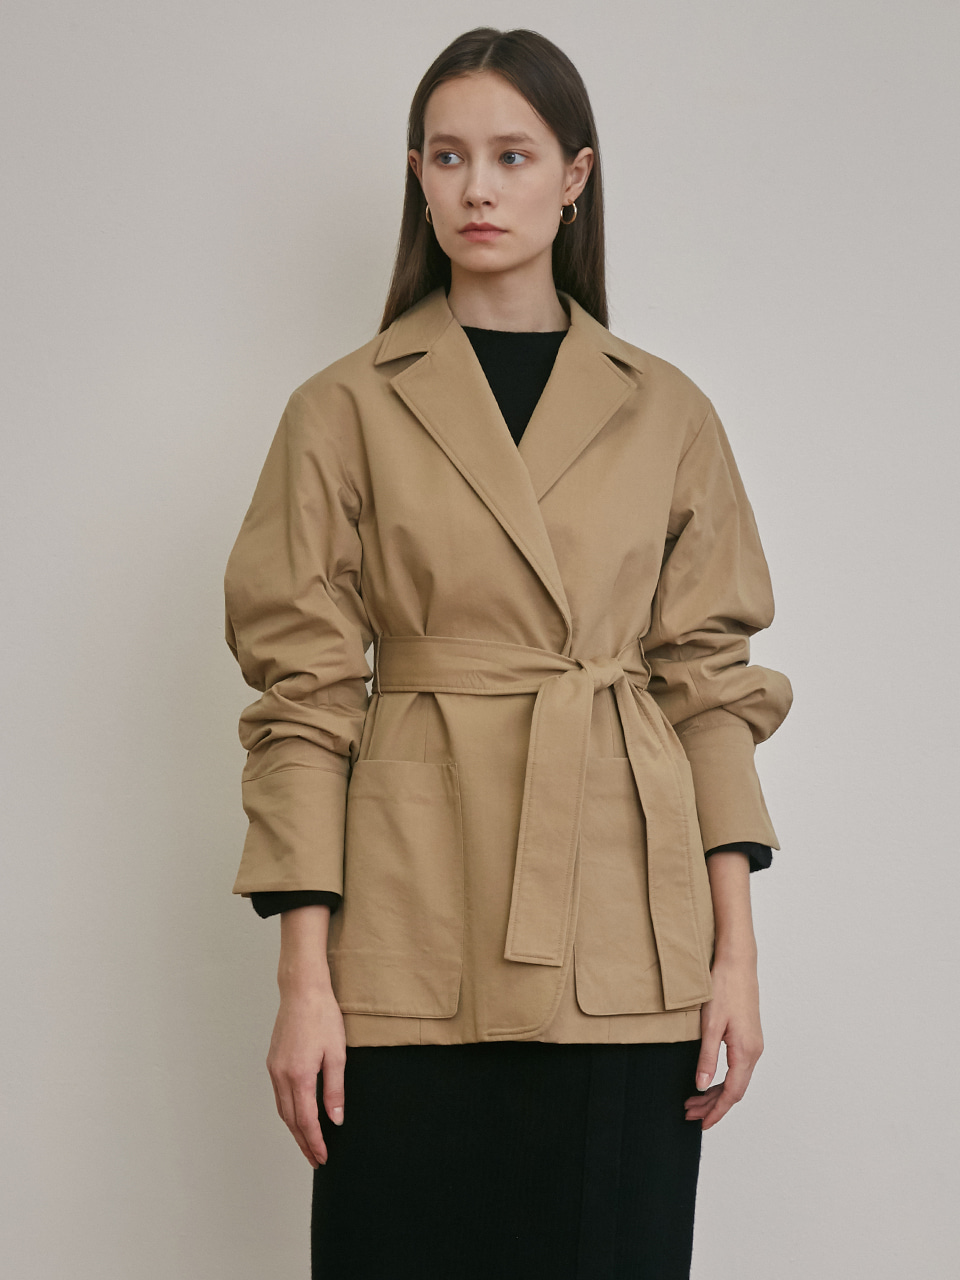 ⓗ BELTED OVERSIZED SHIRTS JACKET [NAVY][BEIGE][CHARCOAL]